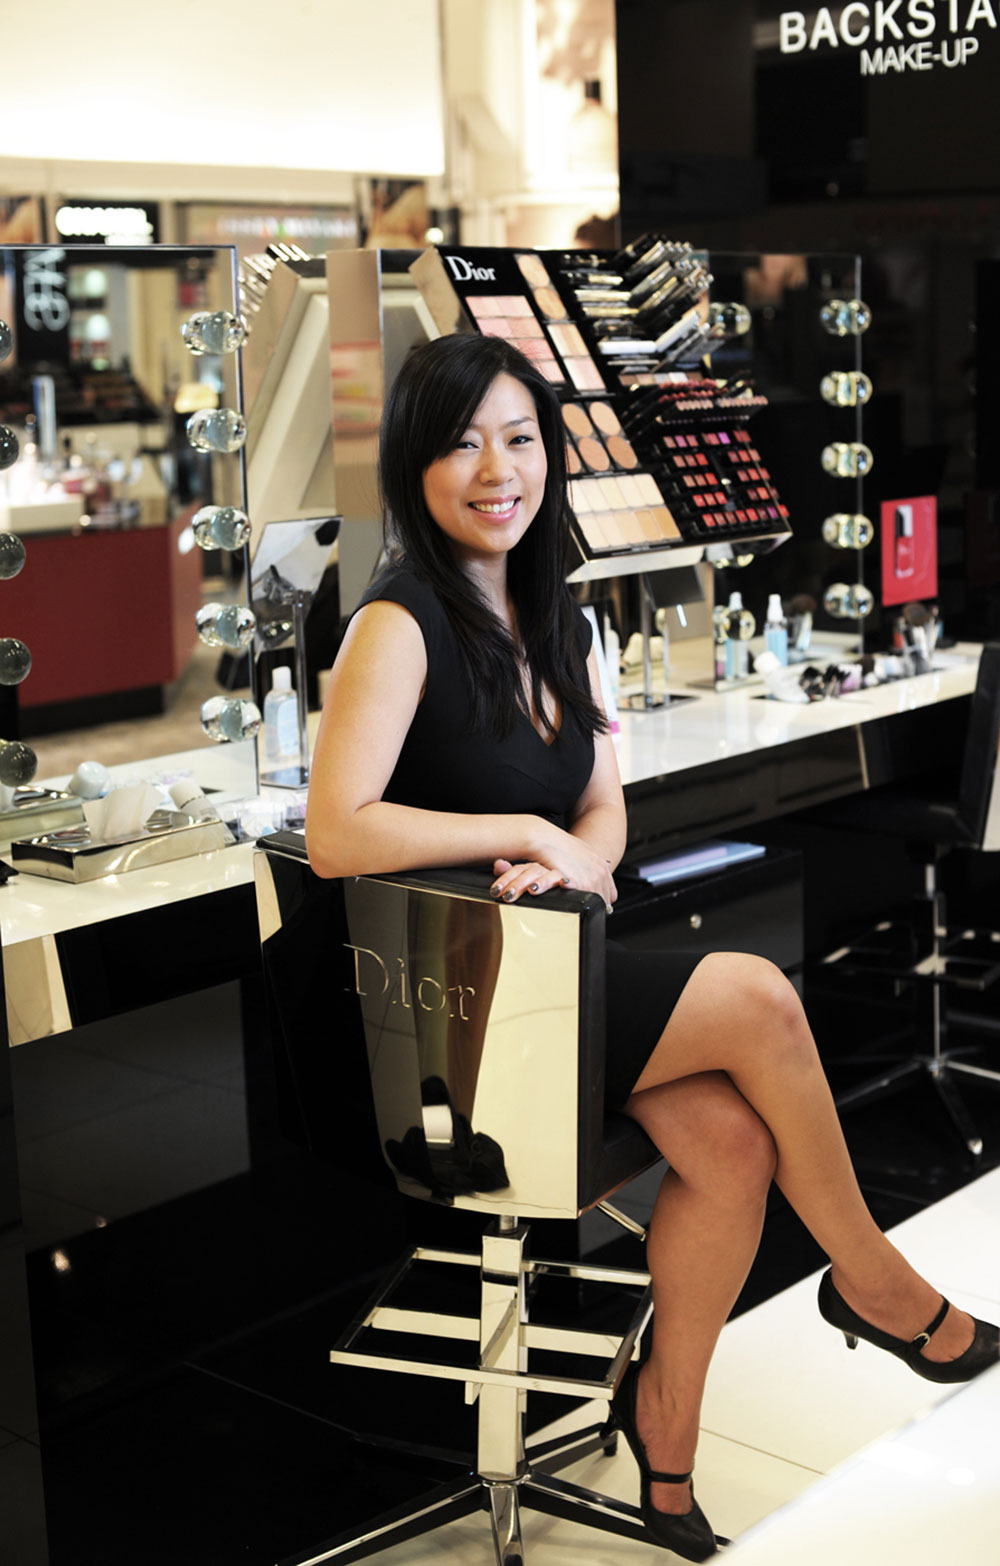 maggie chung dior account executive british columbia